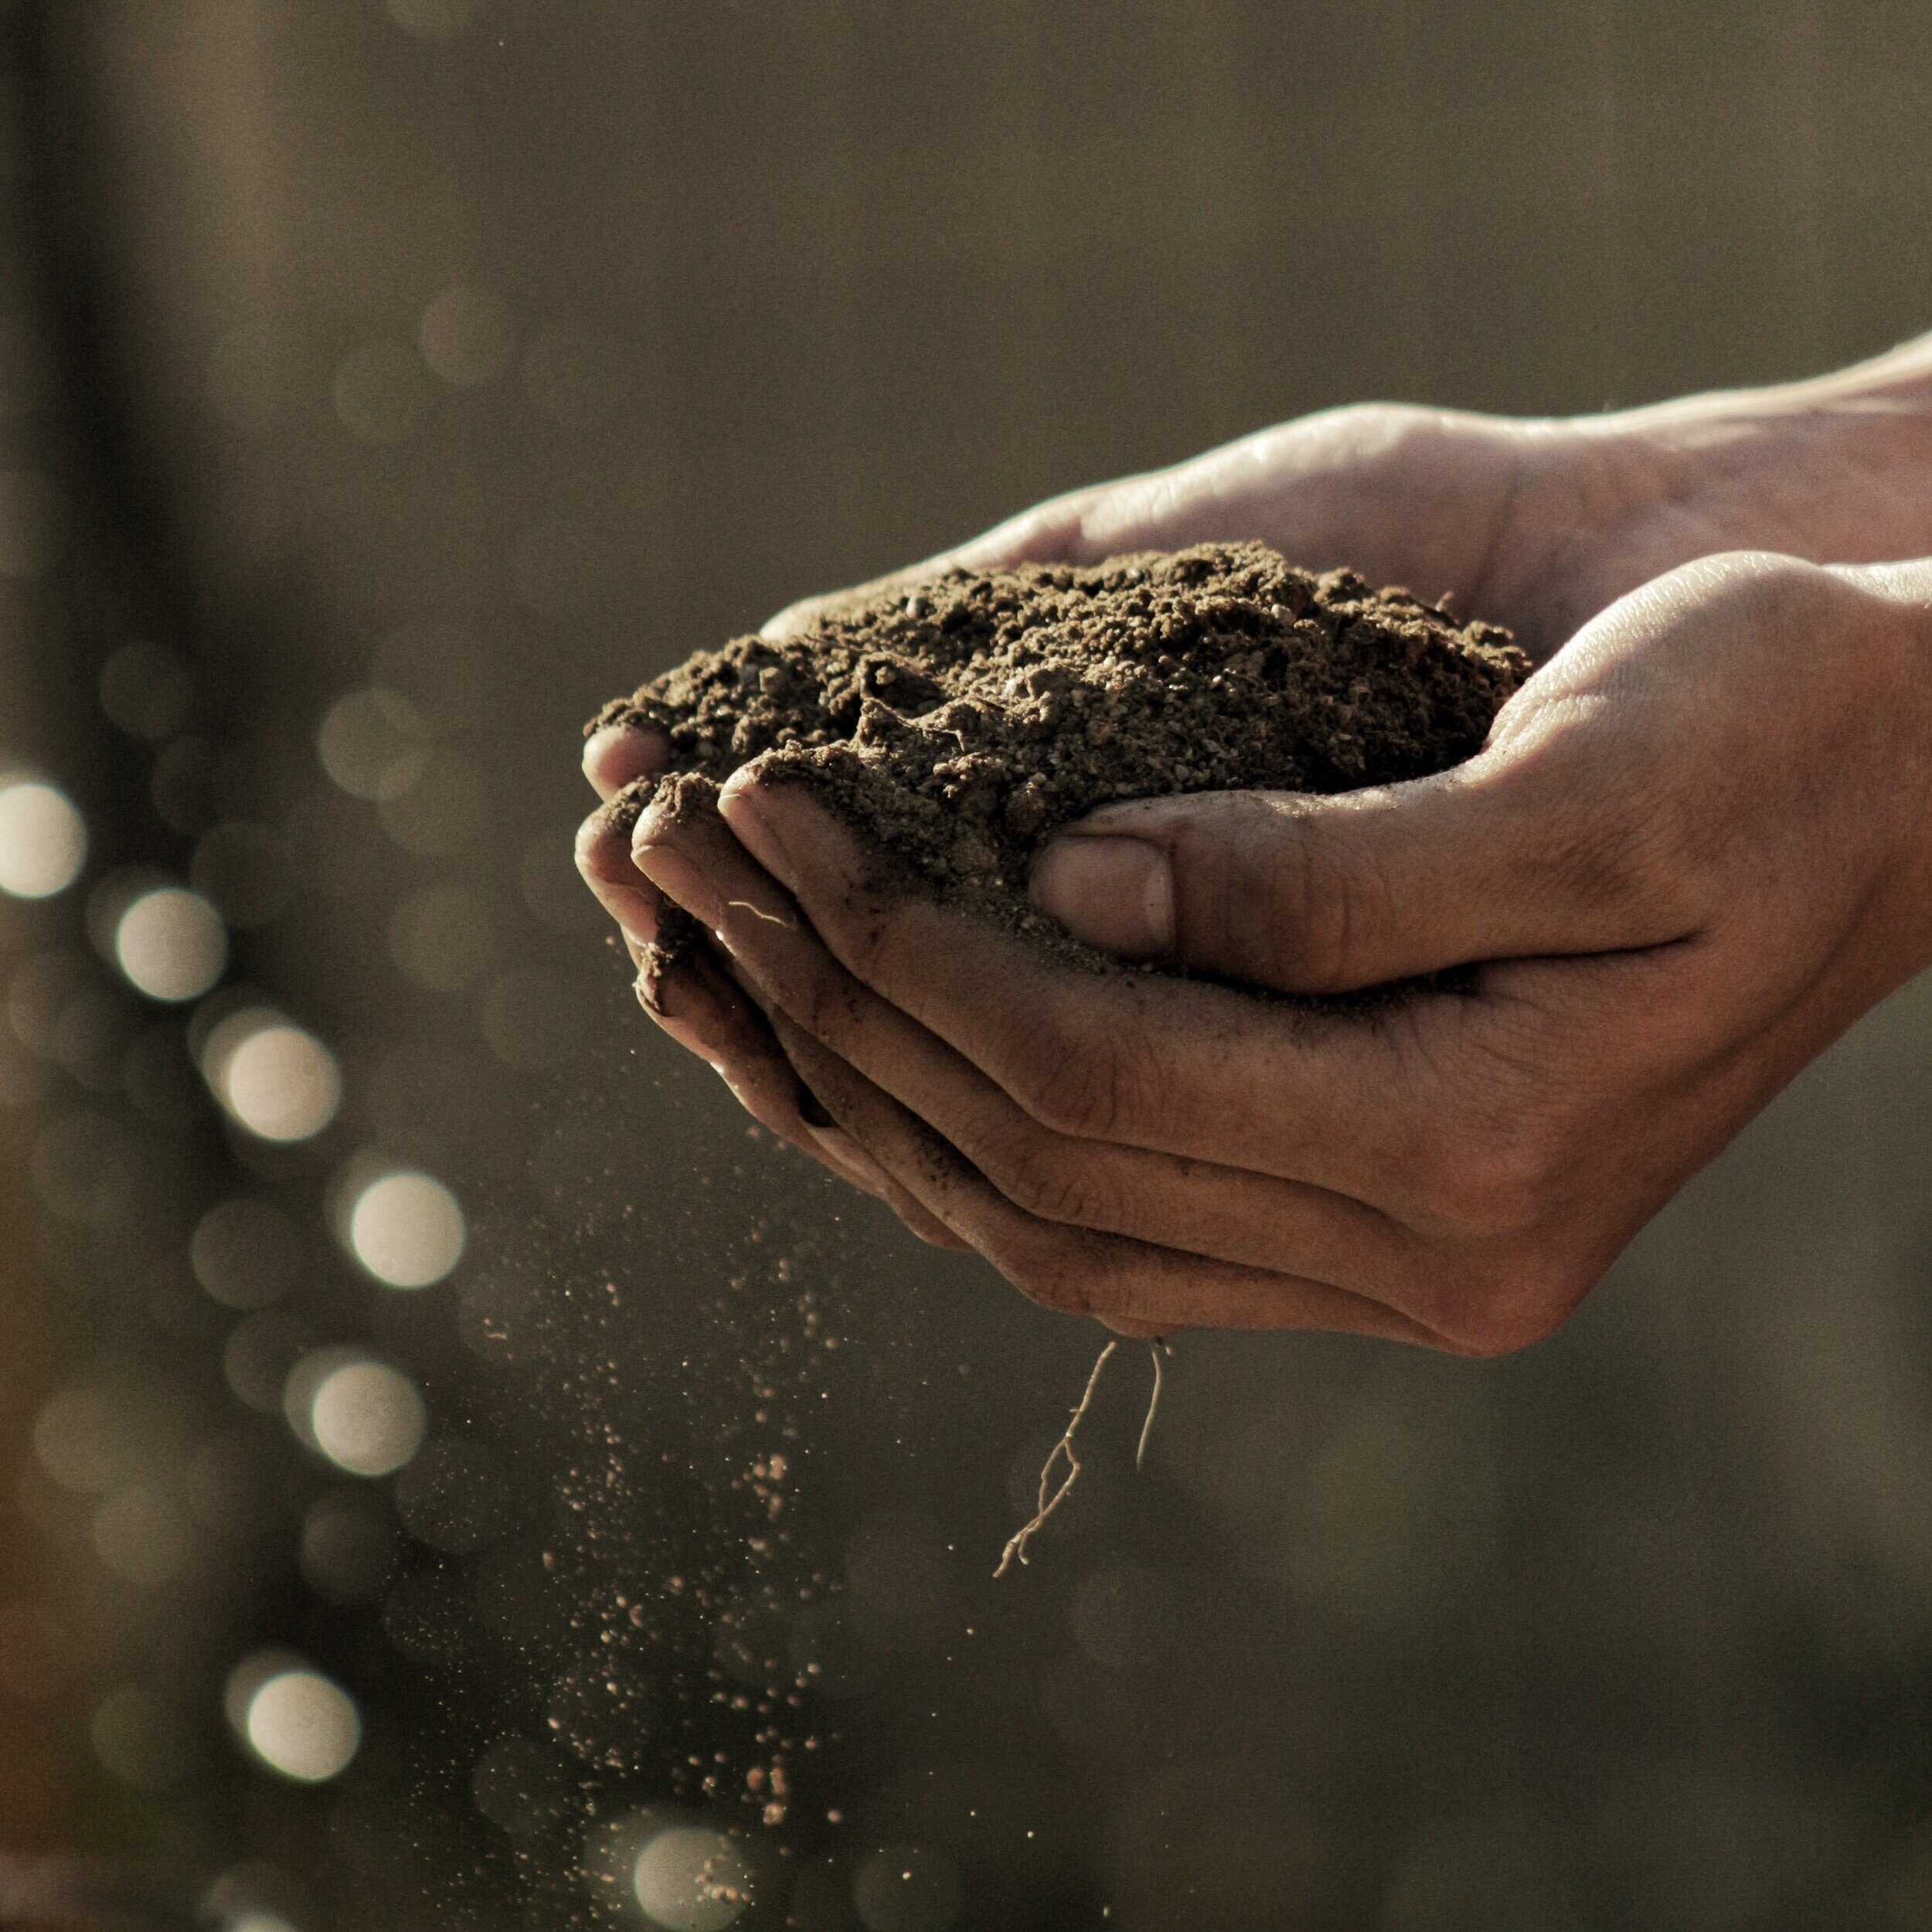 Hands holding nutrient dense soil.